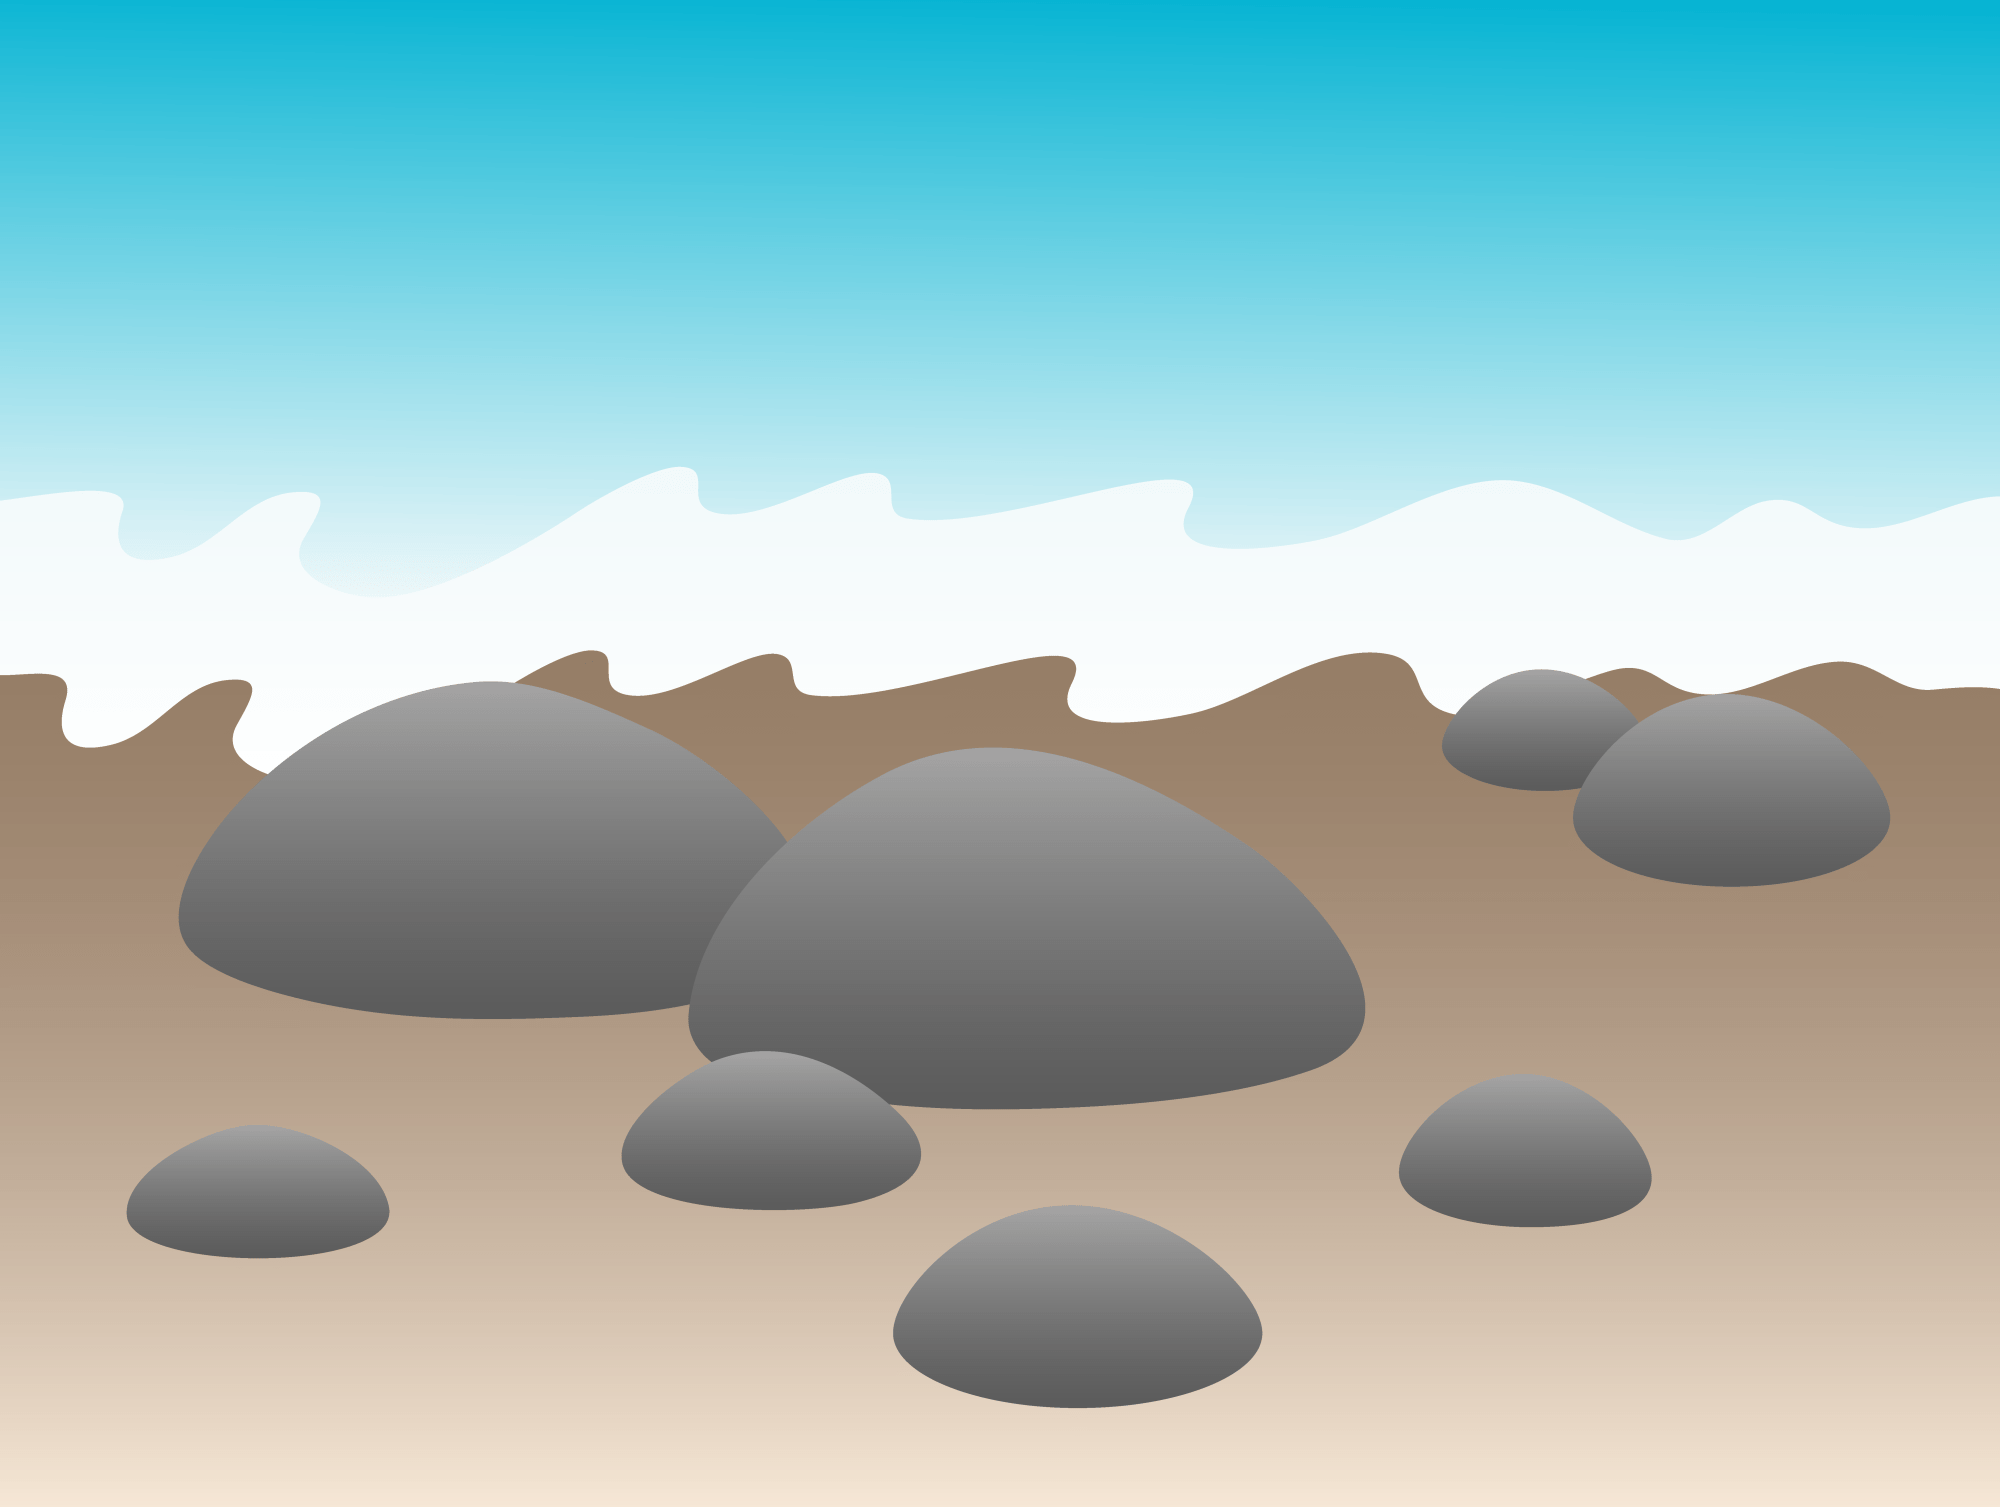 hight resolution of stone clipart